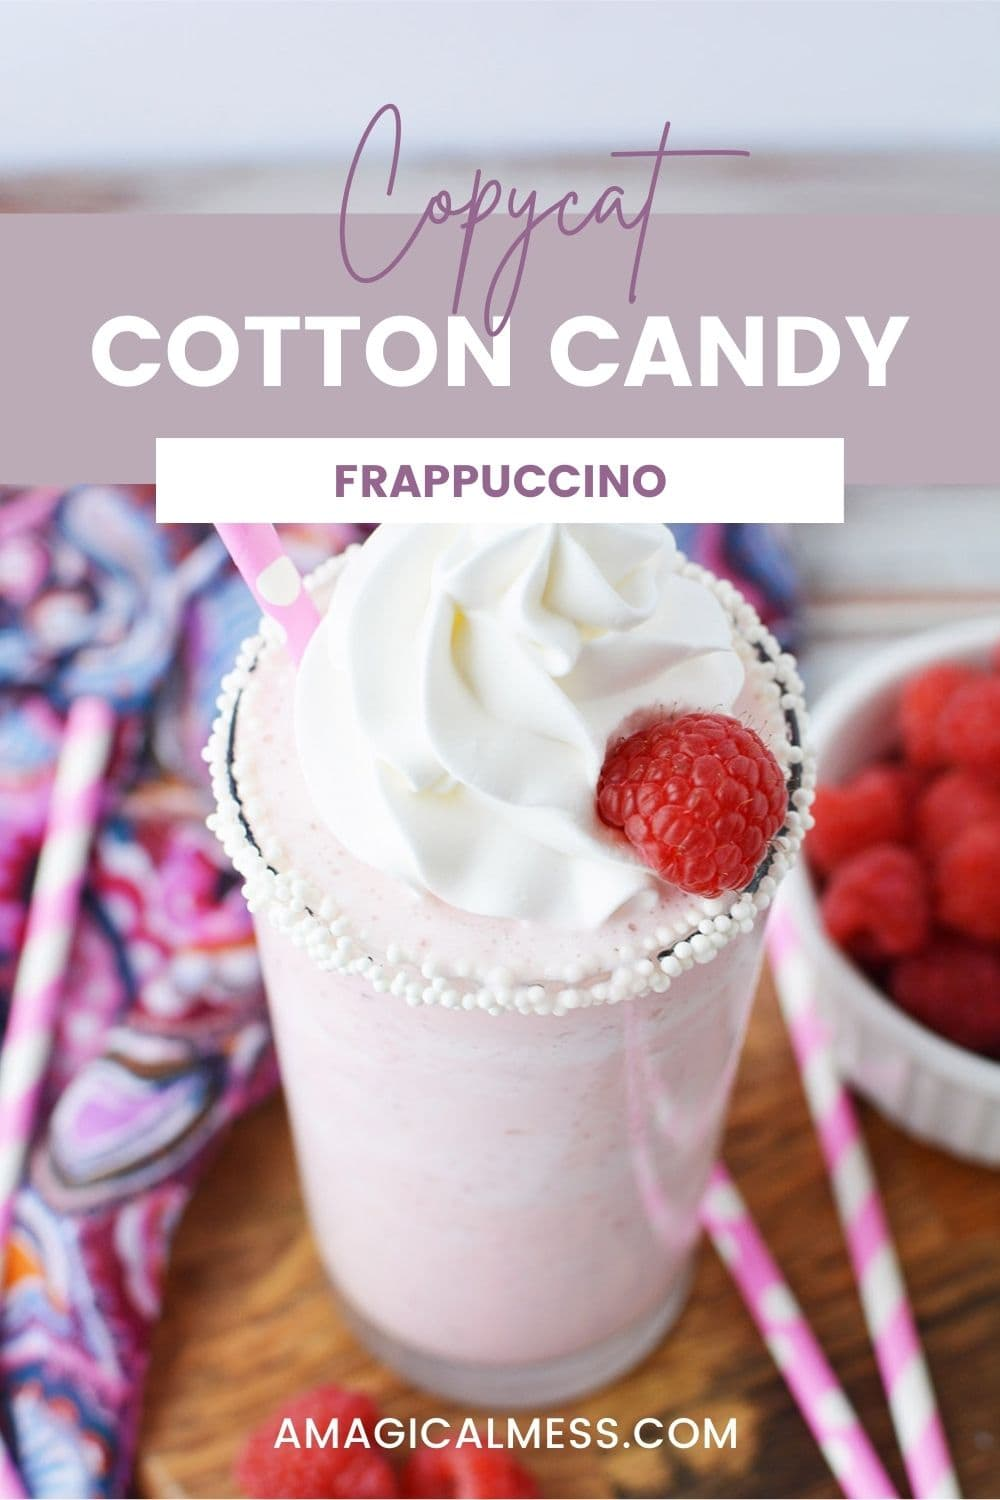 Cotton candy frapp with whipped cream and raspberries on a table.